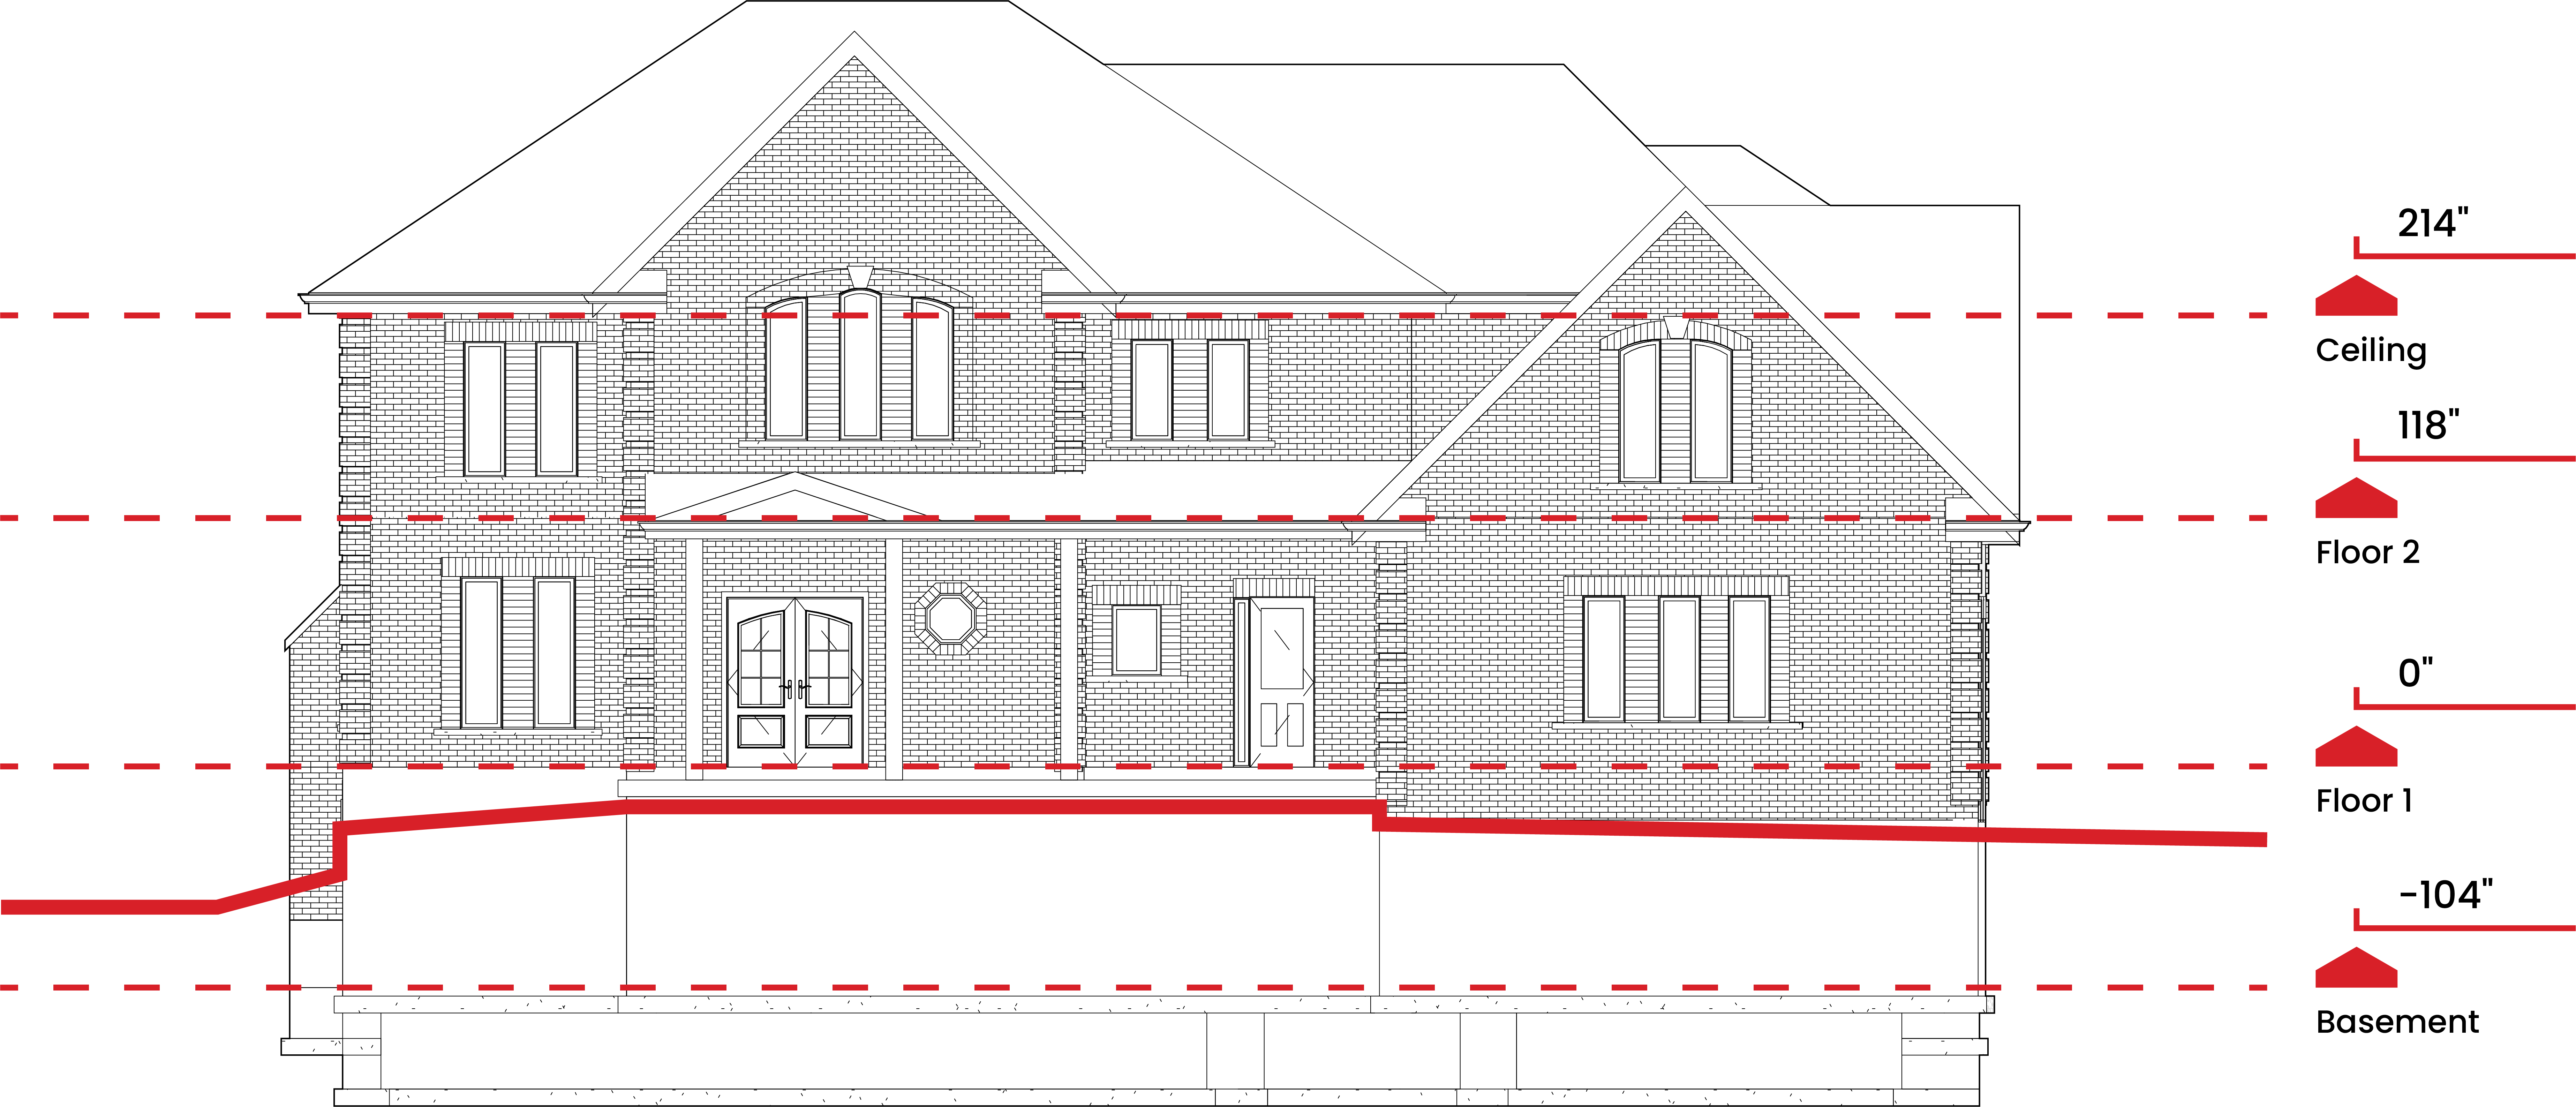 a 2D elevation of a residential home.